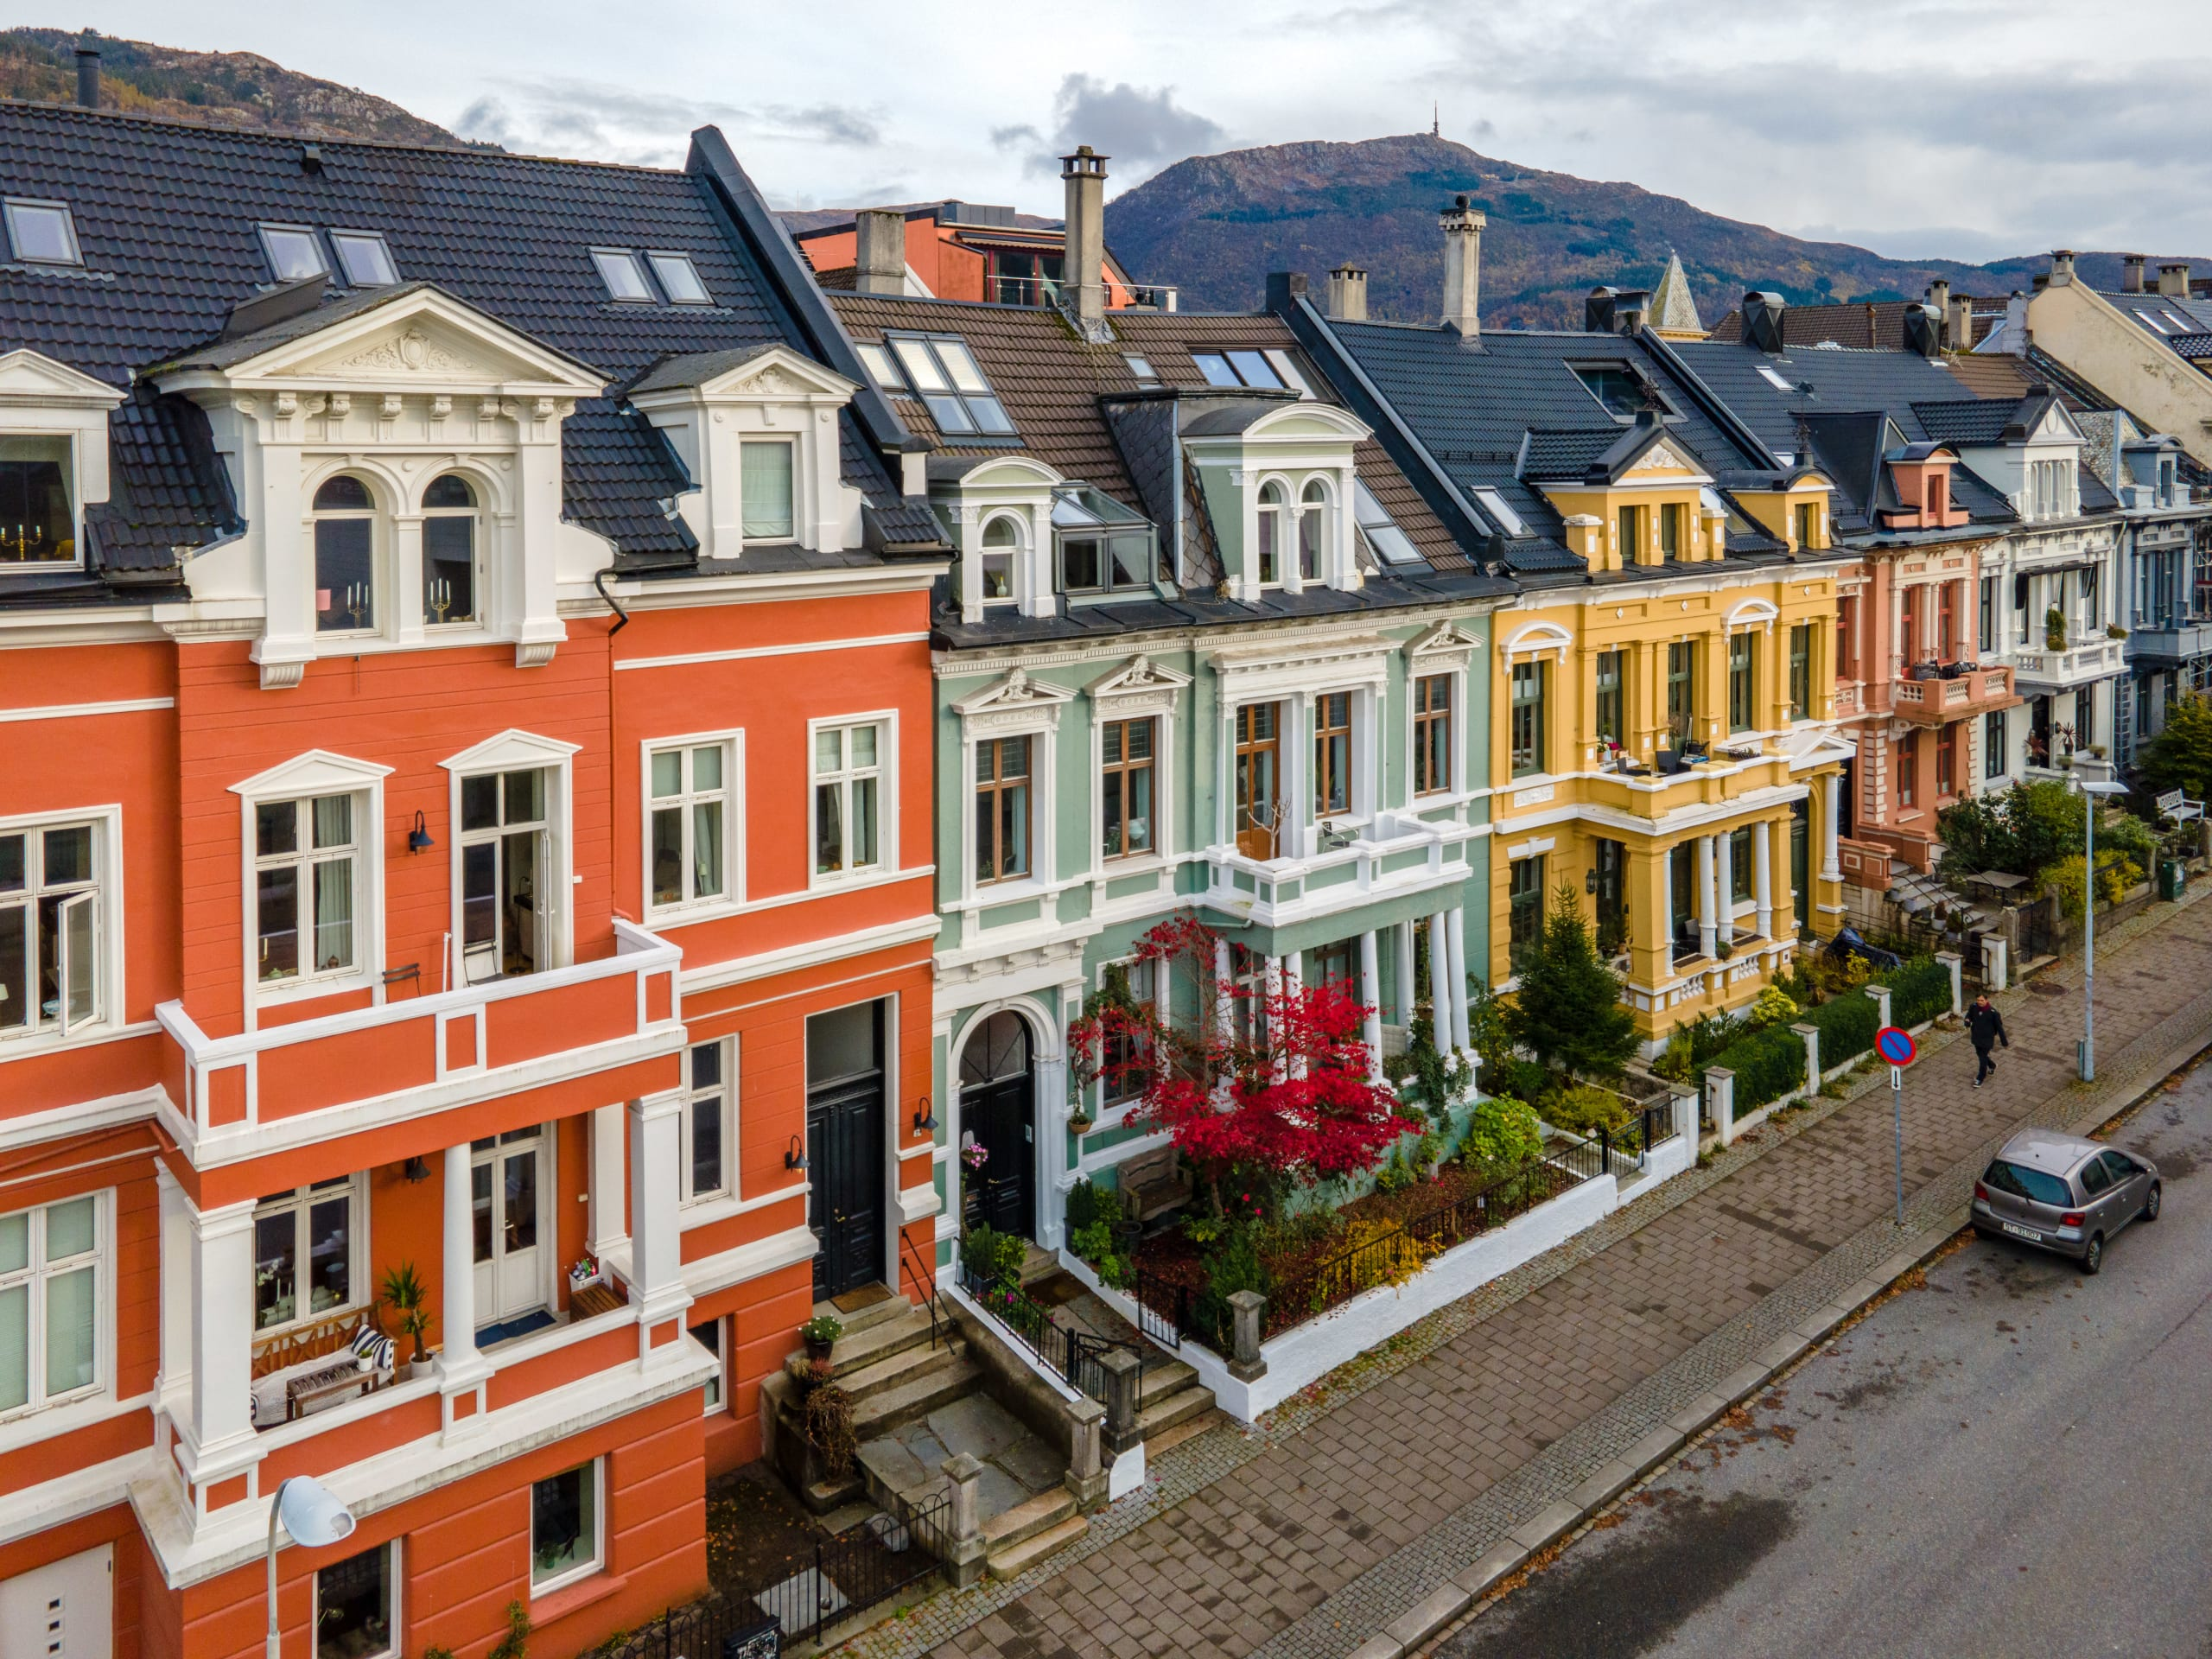 The Bergen equivalent to the Painted Ladies in San Francisco